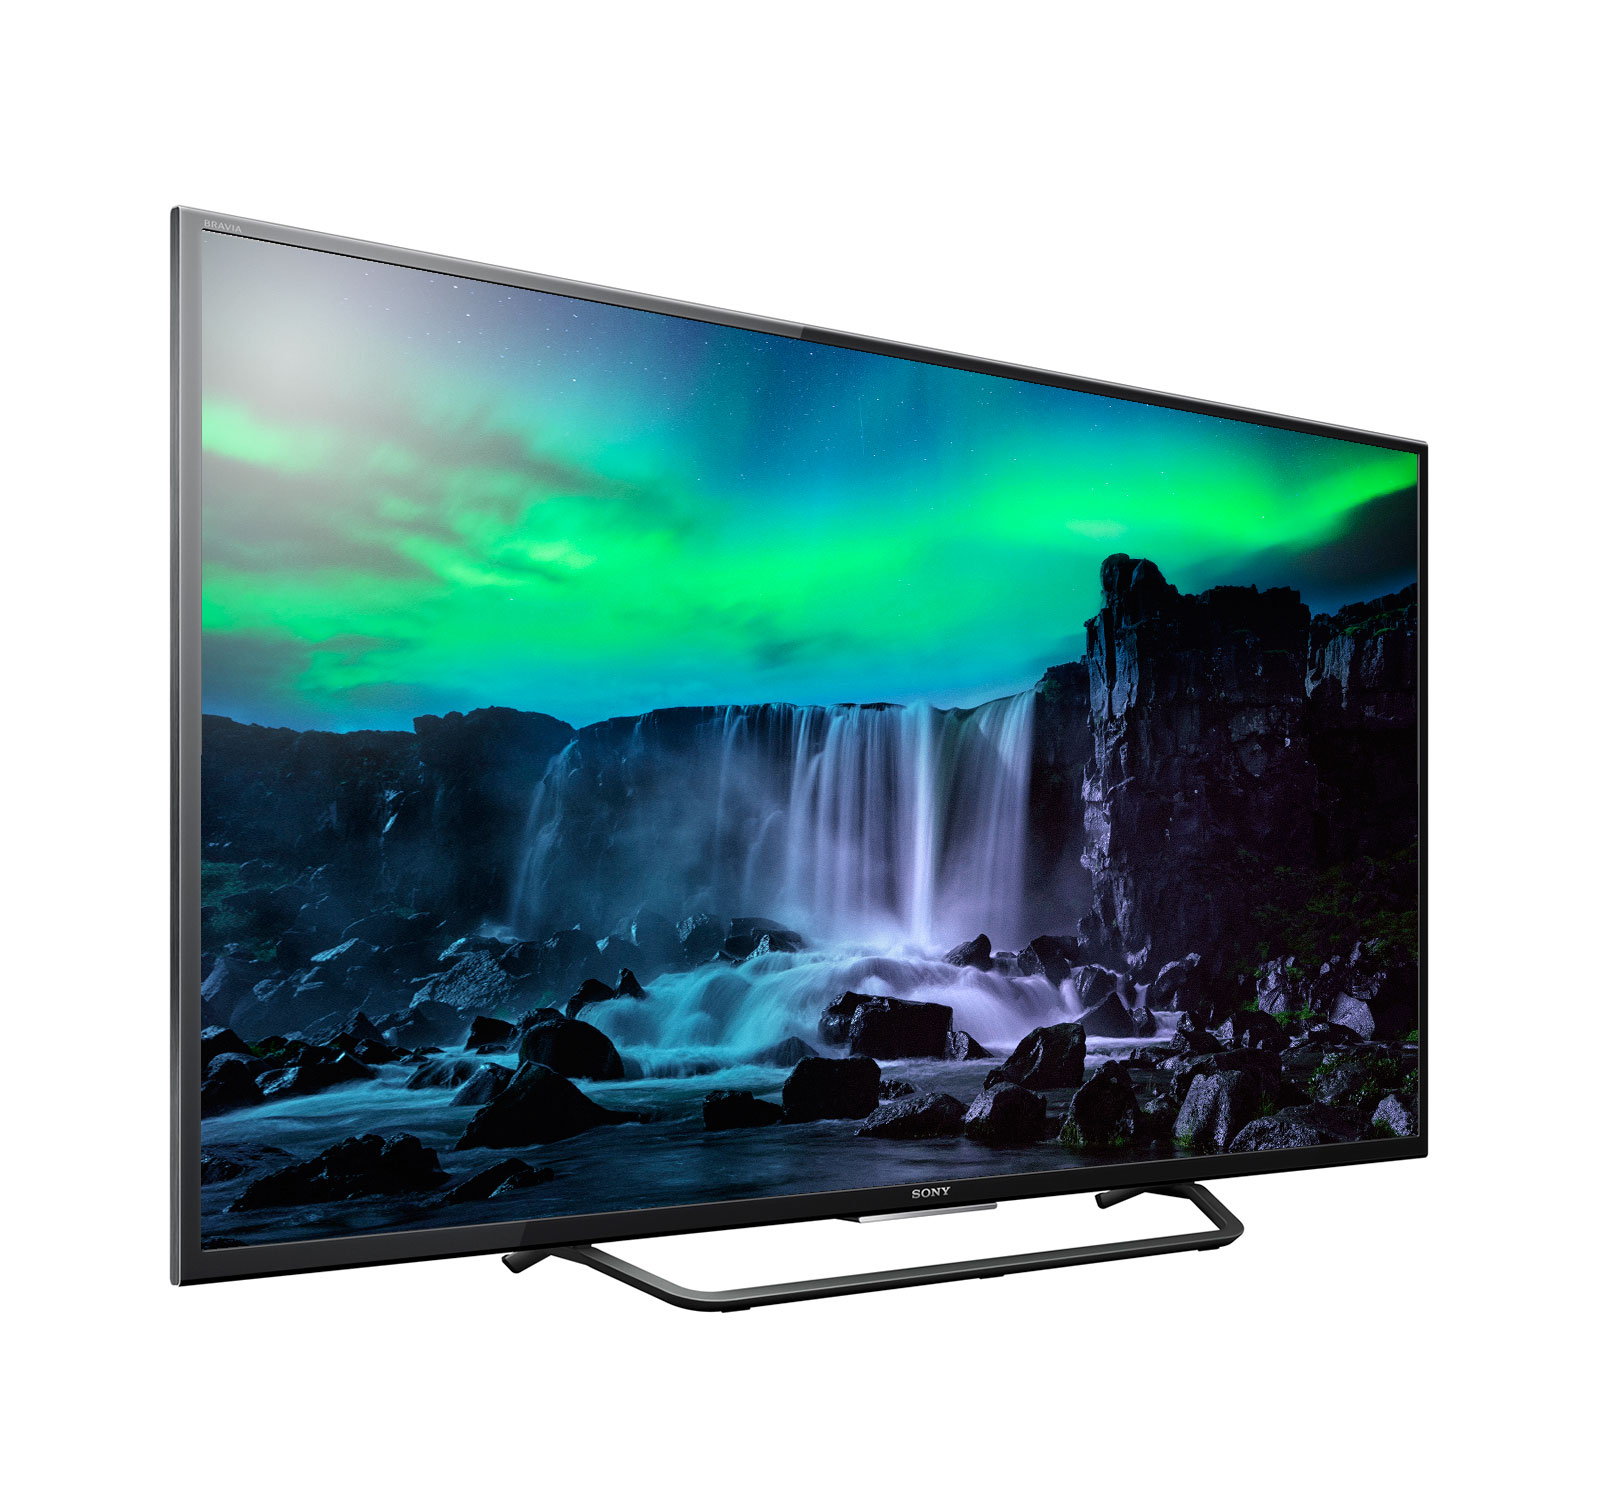 Sony BRAVIA XBR-65X810C HDTV Driver for Windows Mac